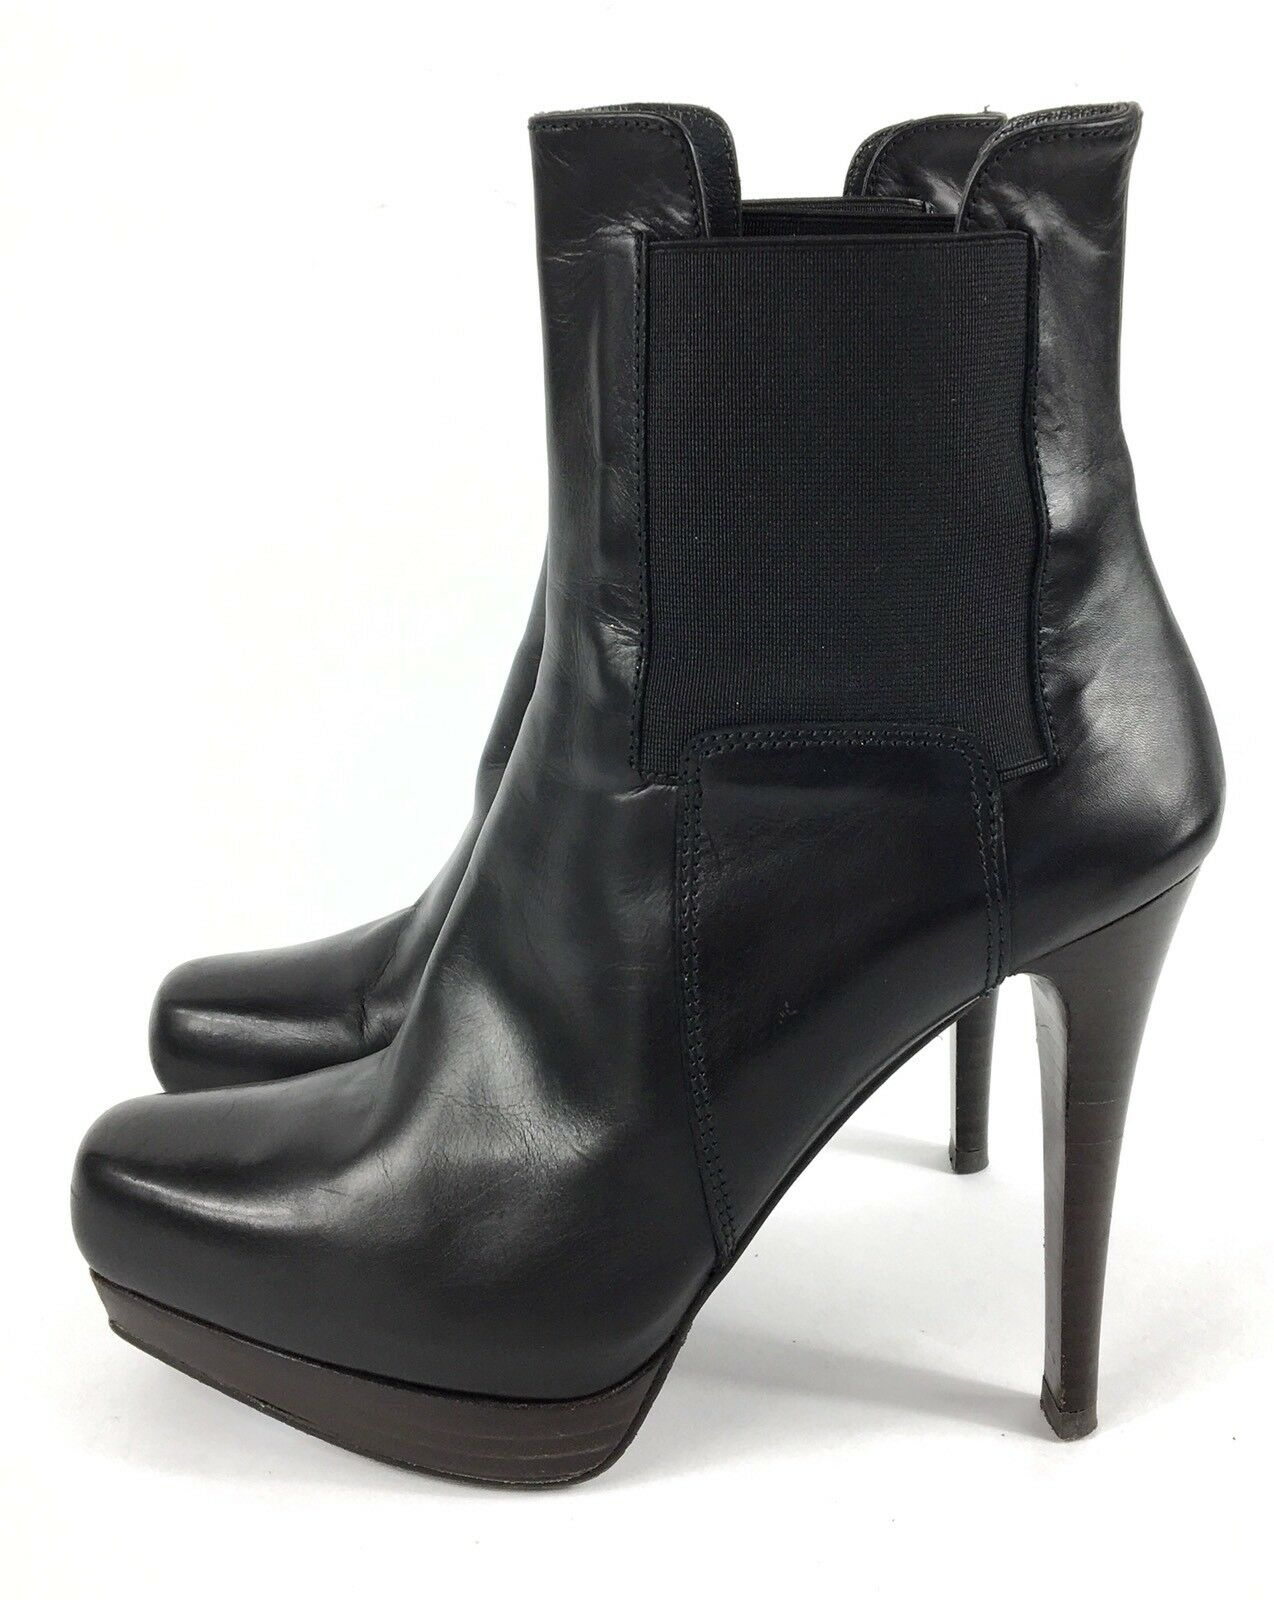 Size 6.5 Stuart Weitzman Black Leather Platform Bootie Wood Heel Stiletto  595